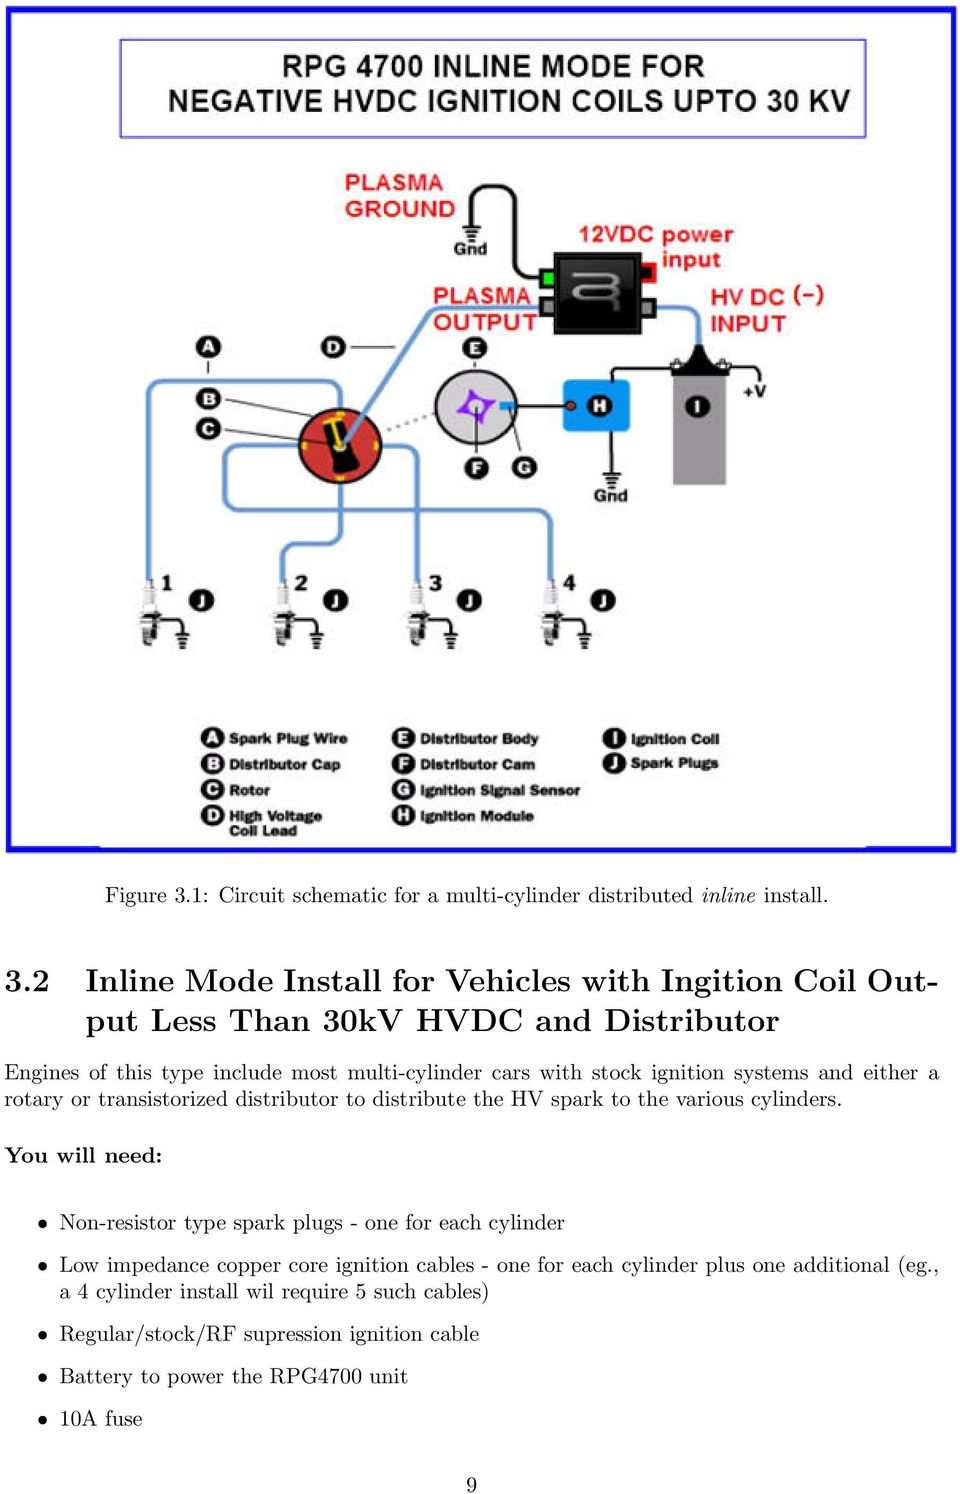 2 Inline Mode Install for Vehicles with Ingition Coil Output Less Than 30kV HVDC and Distributor Engines of this type include most multi-cylinder cars with stock